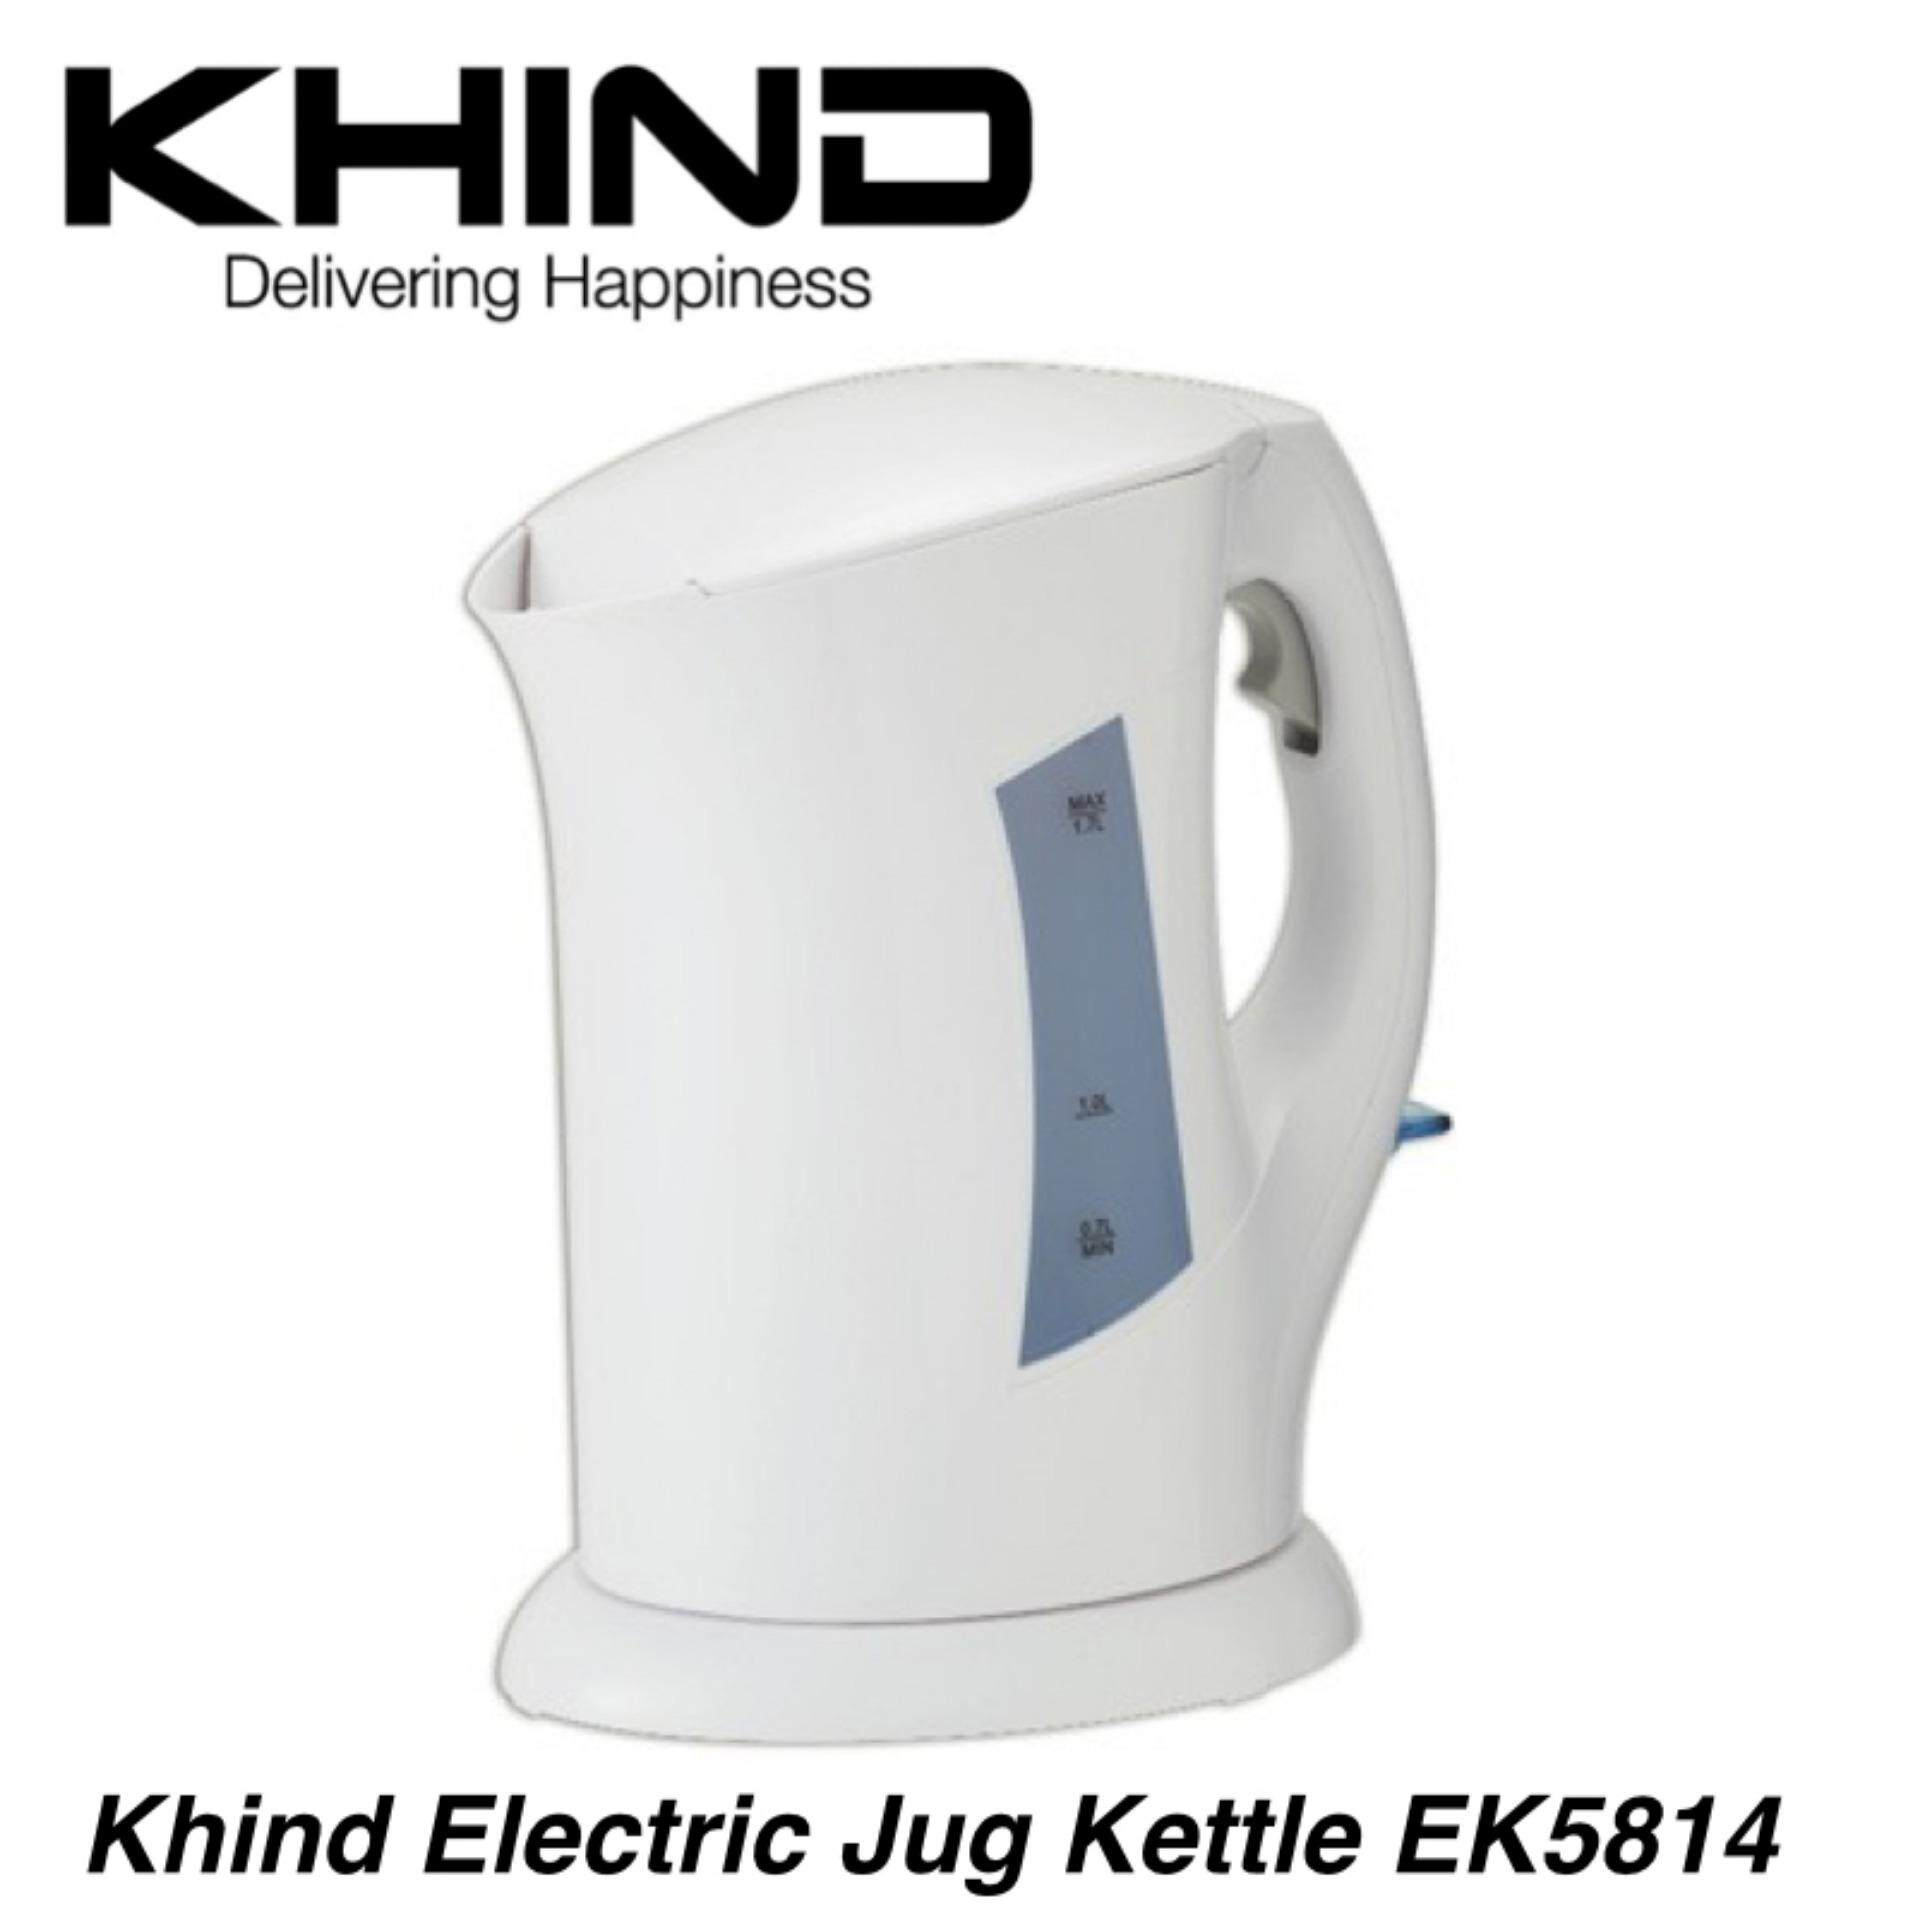 Electric Kettles Thermo Pots Buy Teko Listrik Pemanas Air Kettle Electrik 15 Liter At Best Price In Malaysia